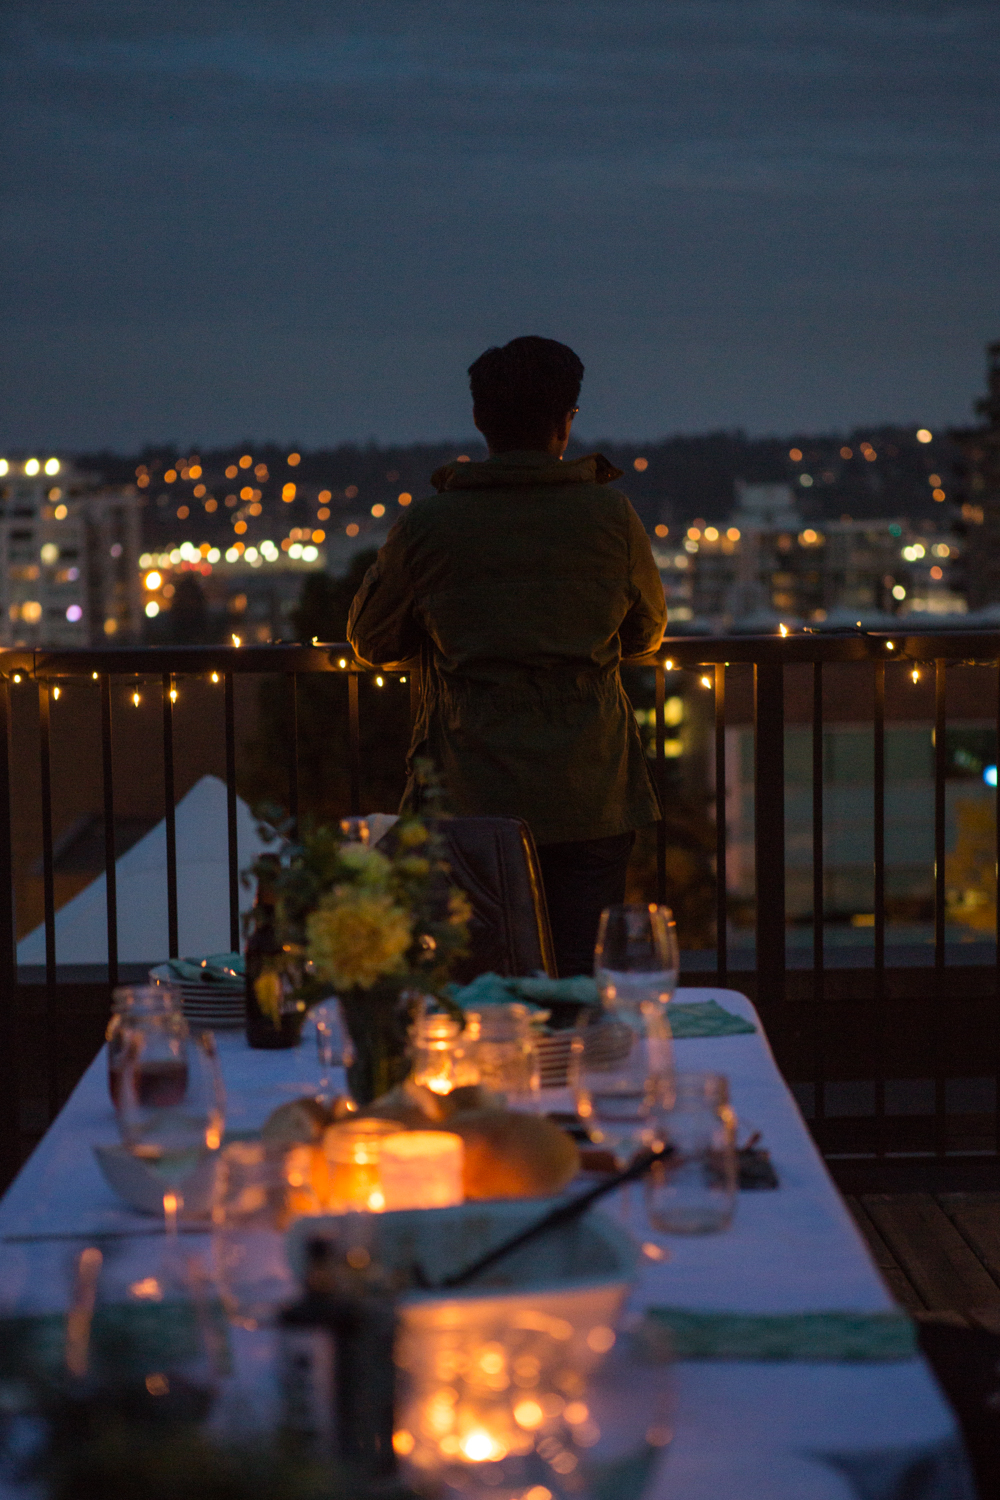 New-Westminster-Rooftop-Dinner-Party_-Bolandia-1981.jpg